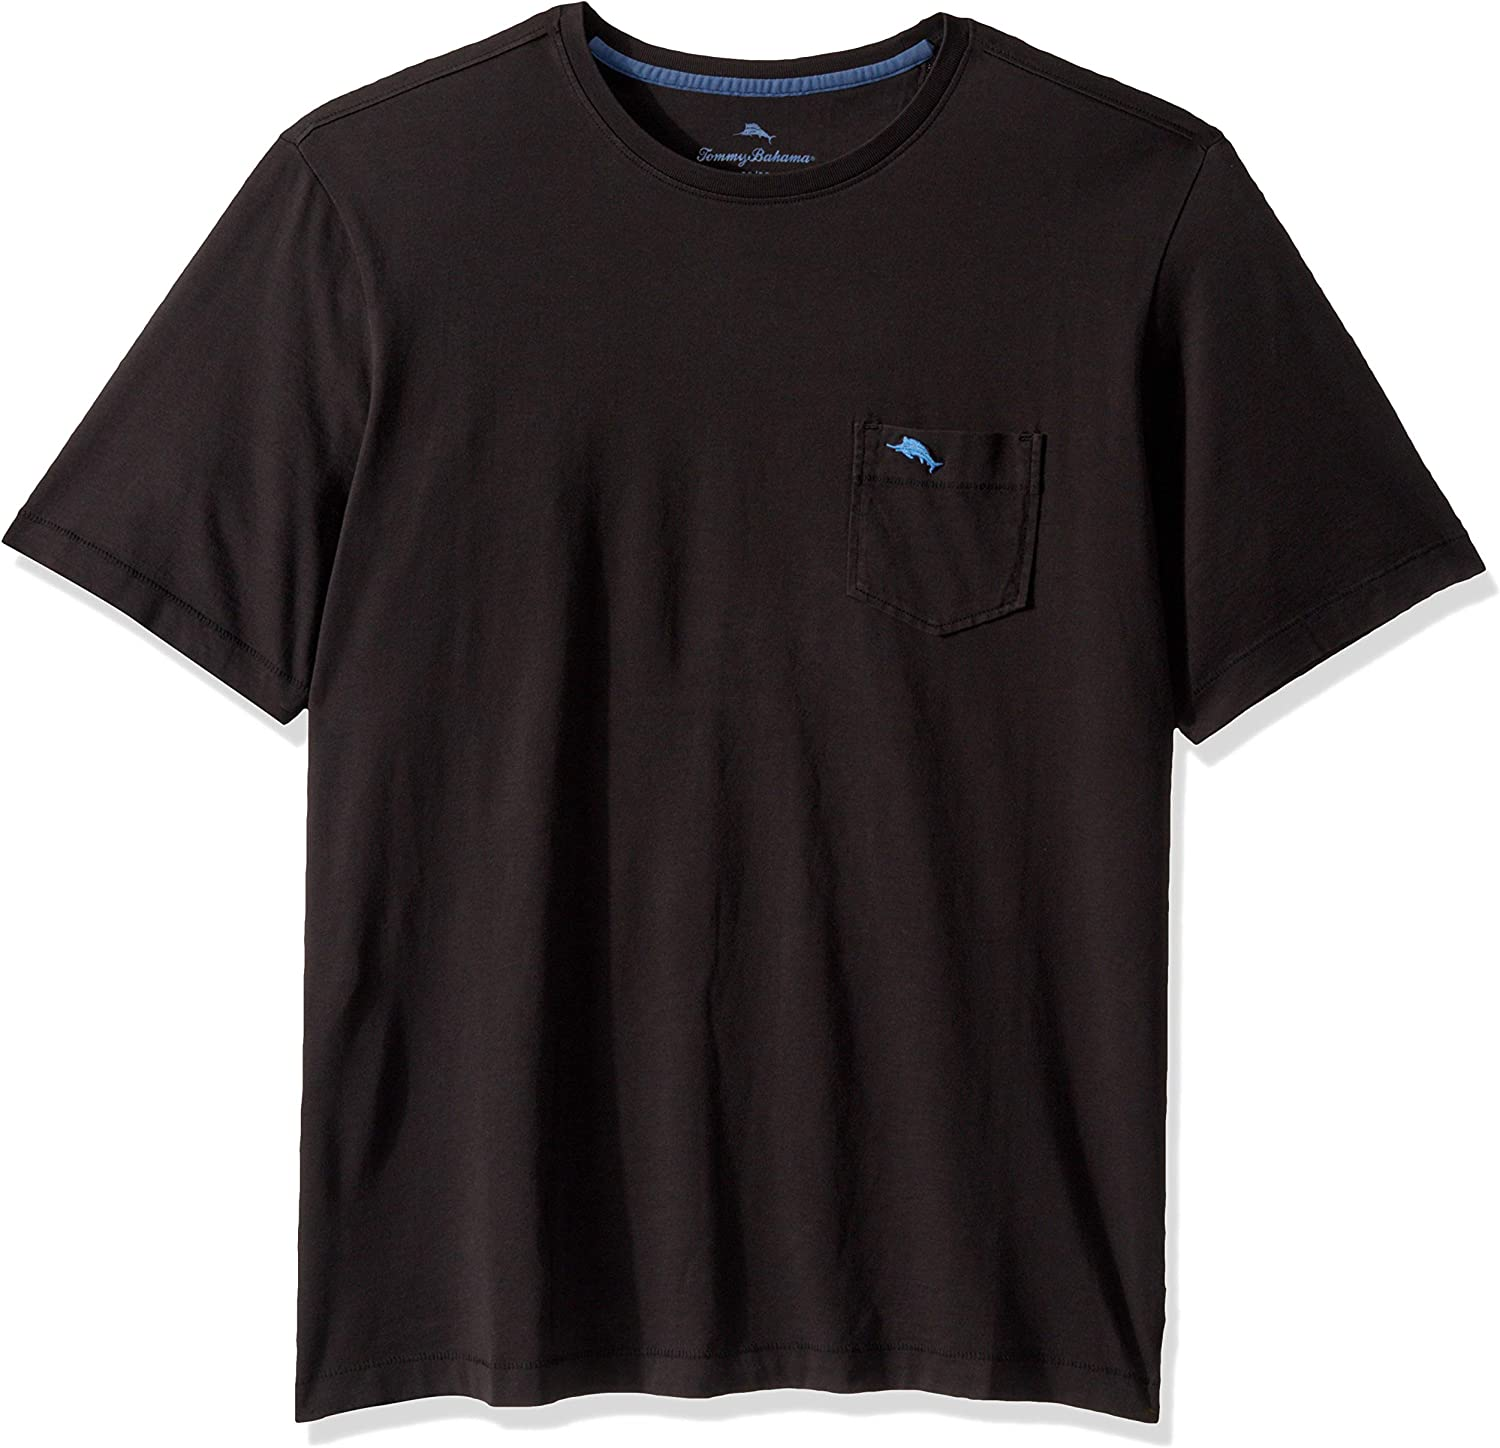 Tommy excellence Bahama Men's Skyline Max 67% OFF Bali T-Shirt